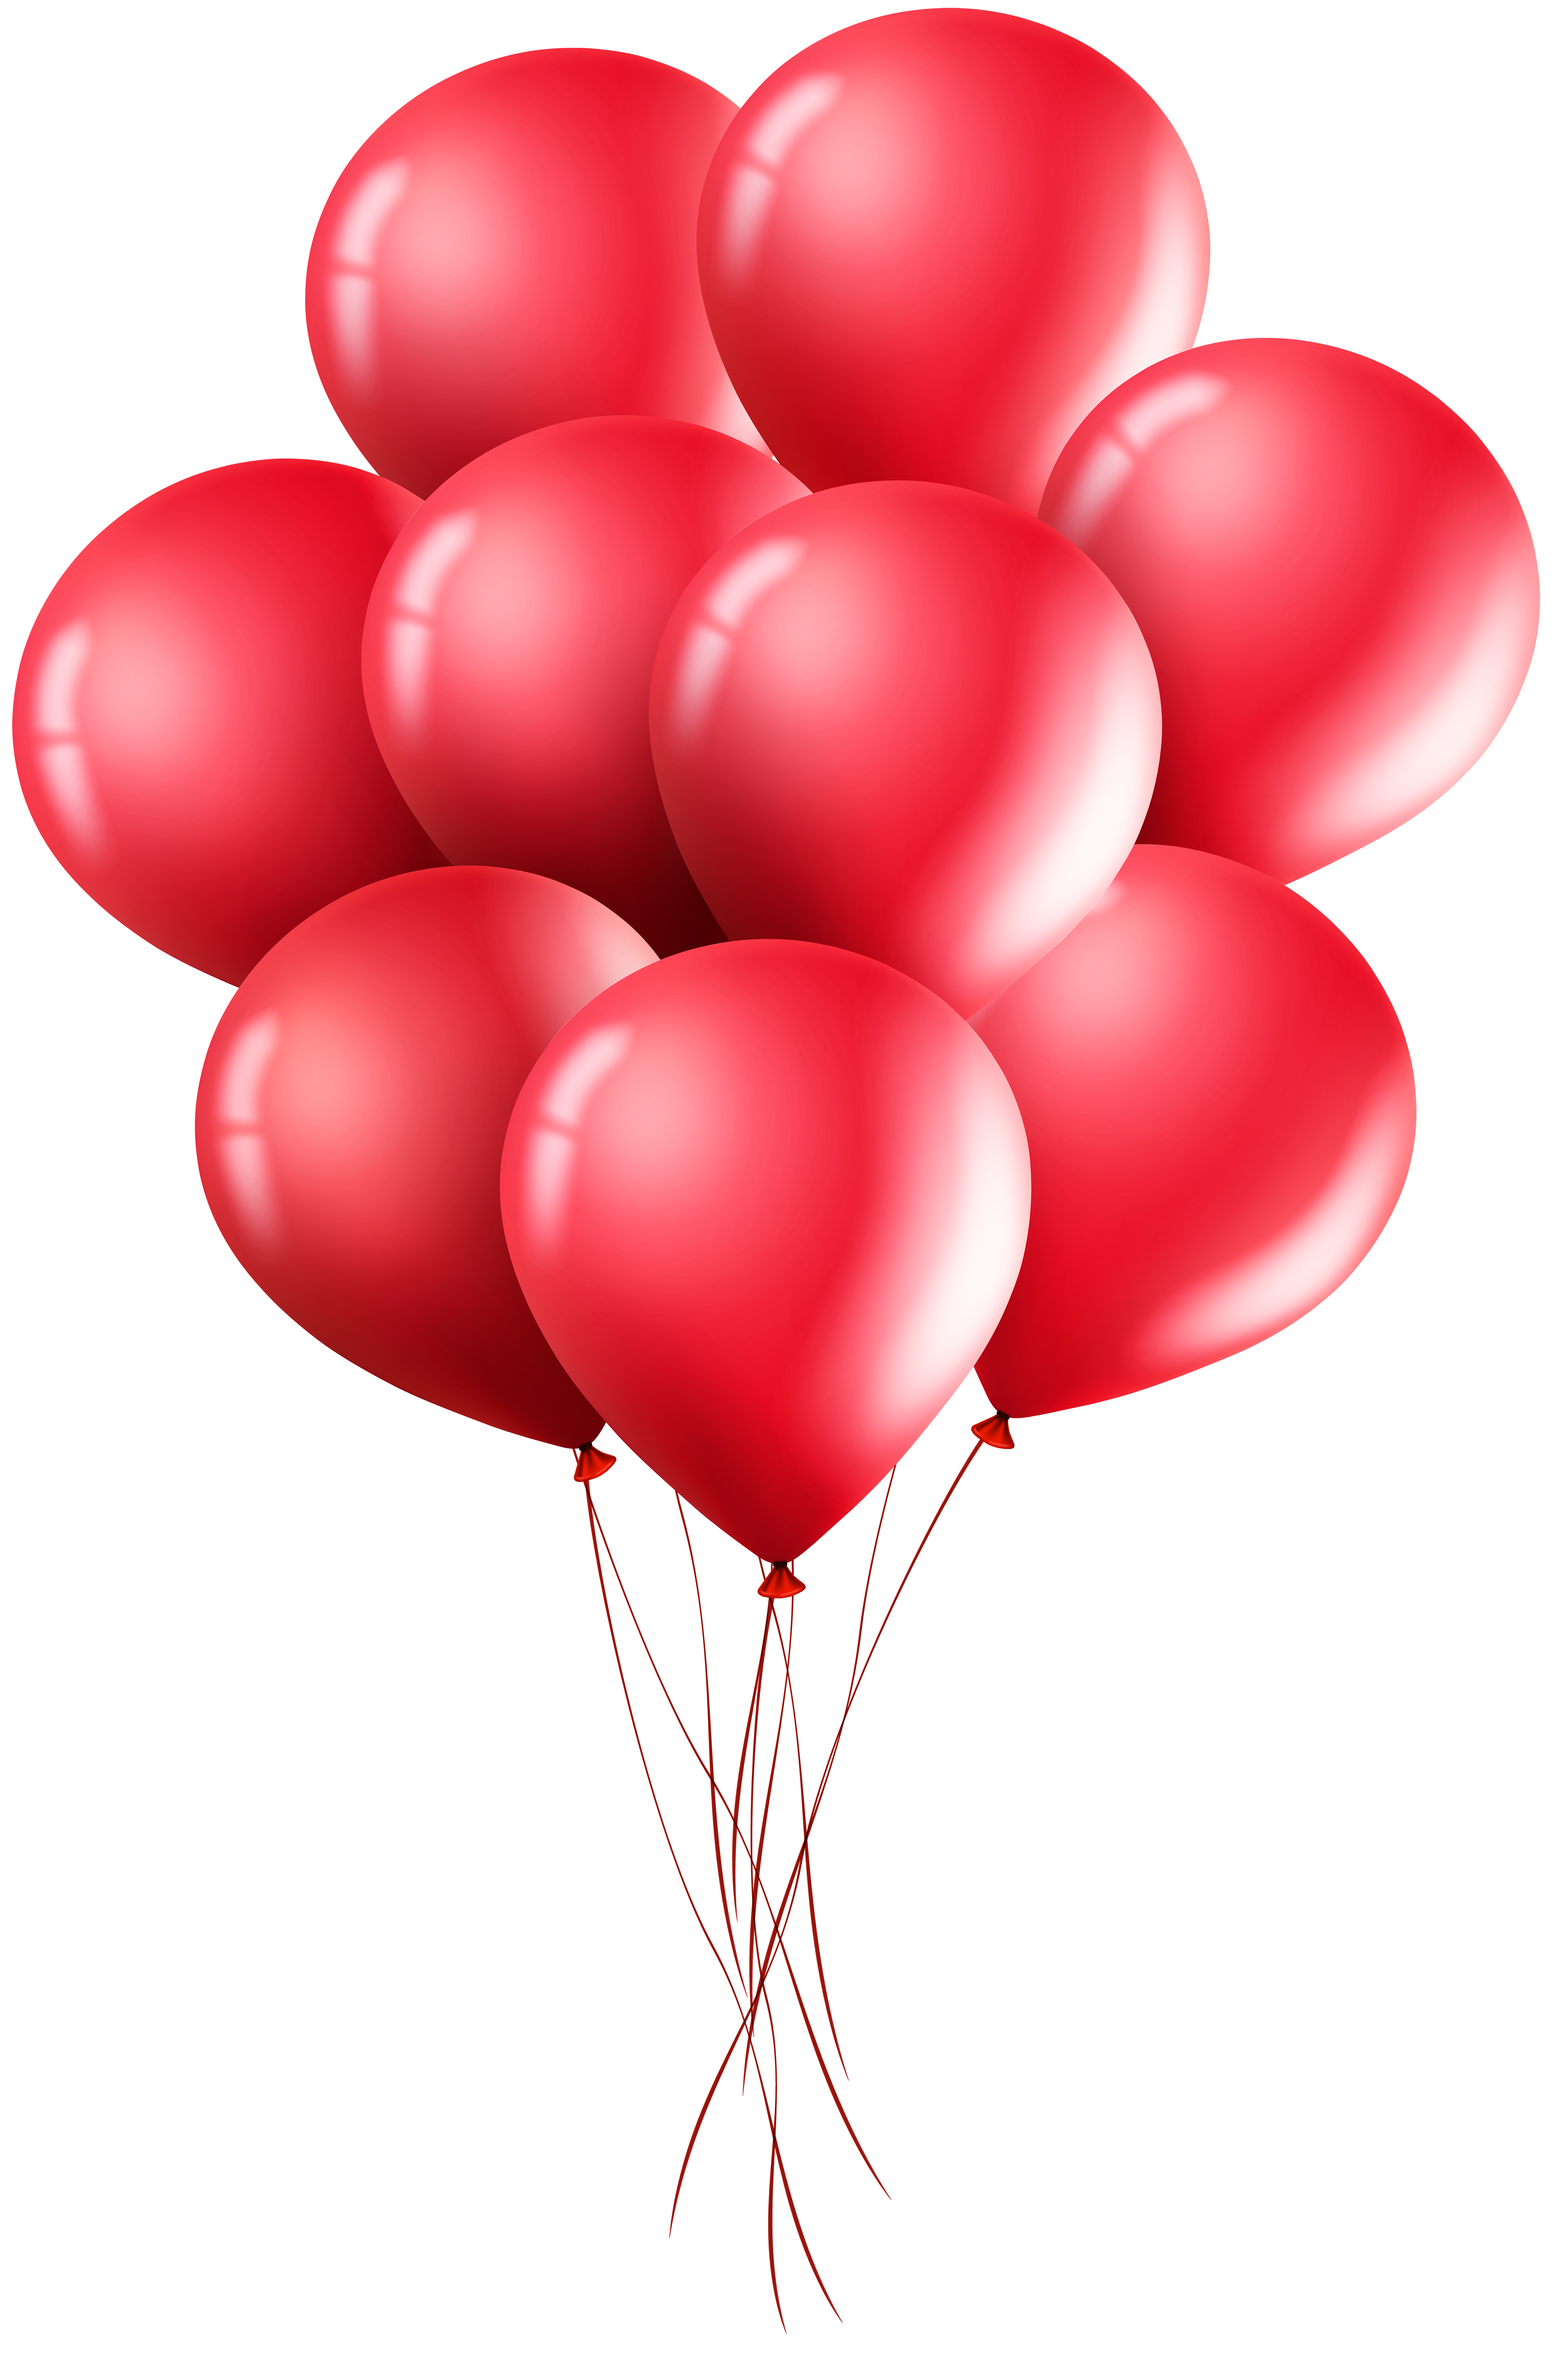 Red Balloons PNG Clip Art Image.